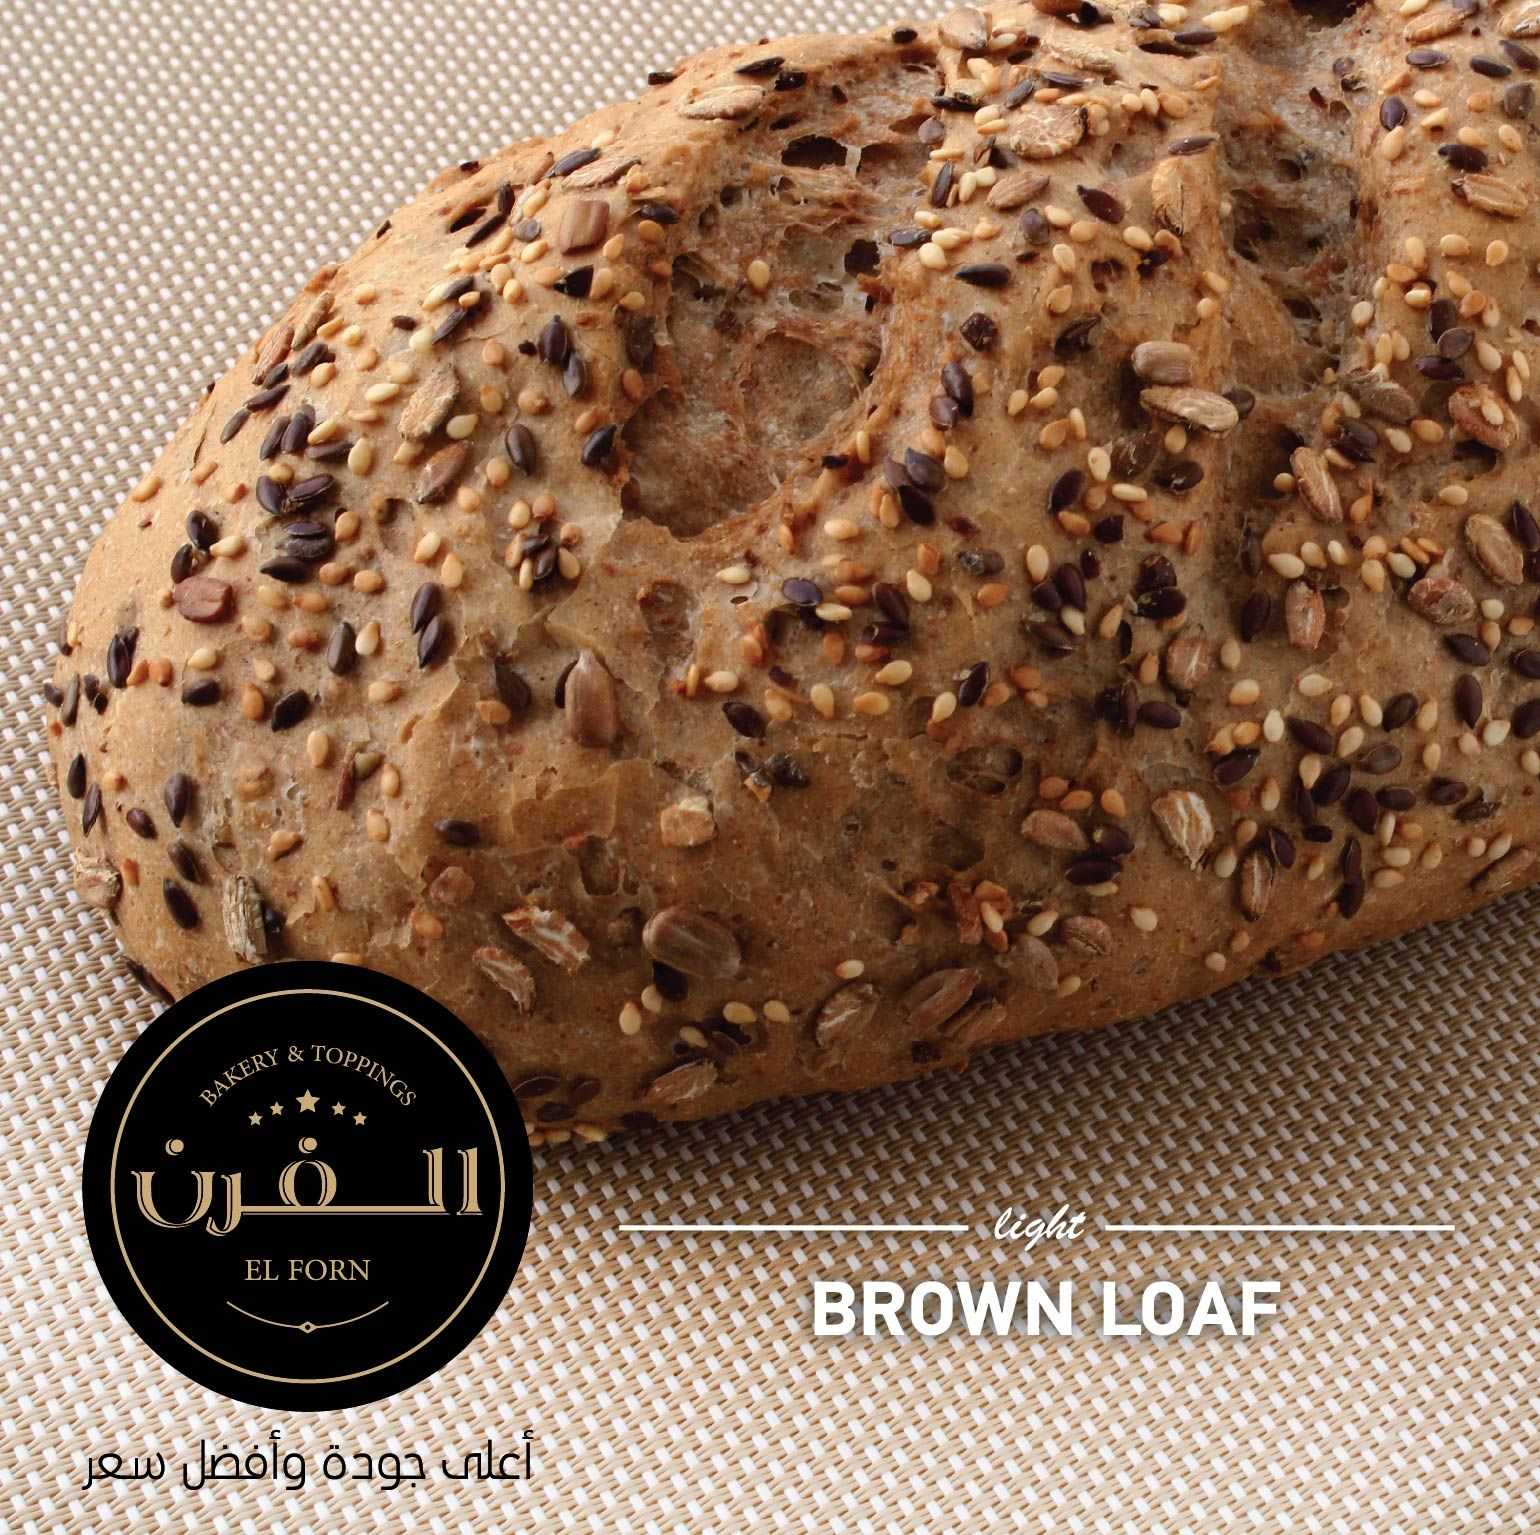 Photo of Brown Loaf  El Forn's brown bread products are made with the…